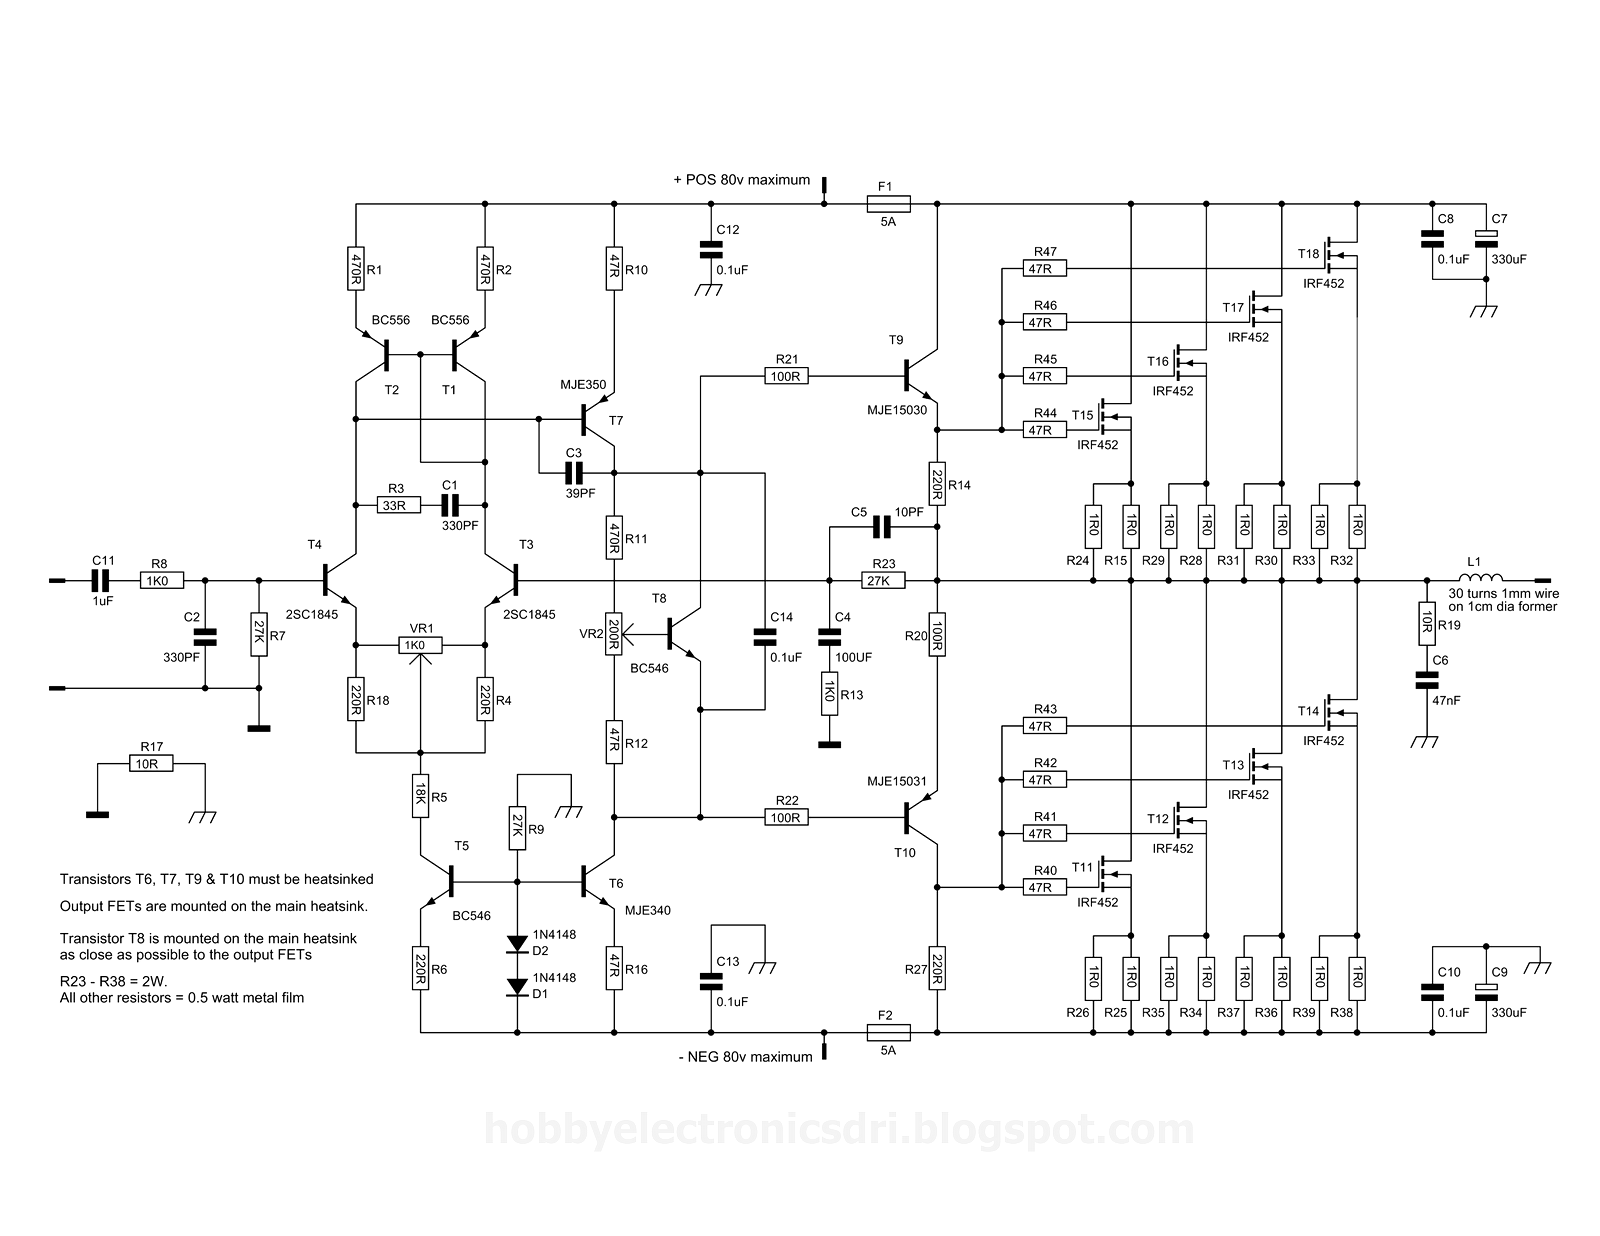 2000w Power Amp Ocl Circuit Using Sanken Component Hobby Electronics Schematic Pdf Nmos400sche Tube High Williamson Ta7205 Marshall For Thomas 820 Organ 12au7 Guitammer Buttkicker